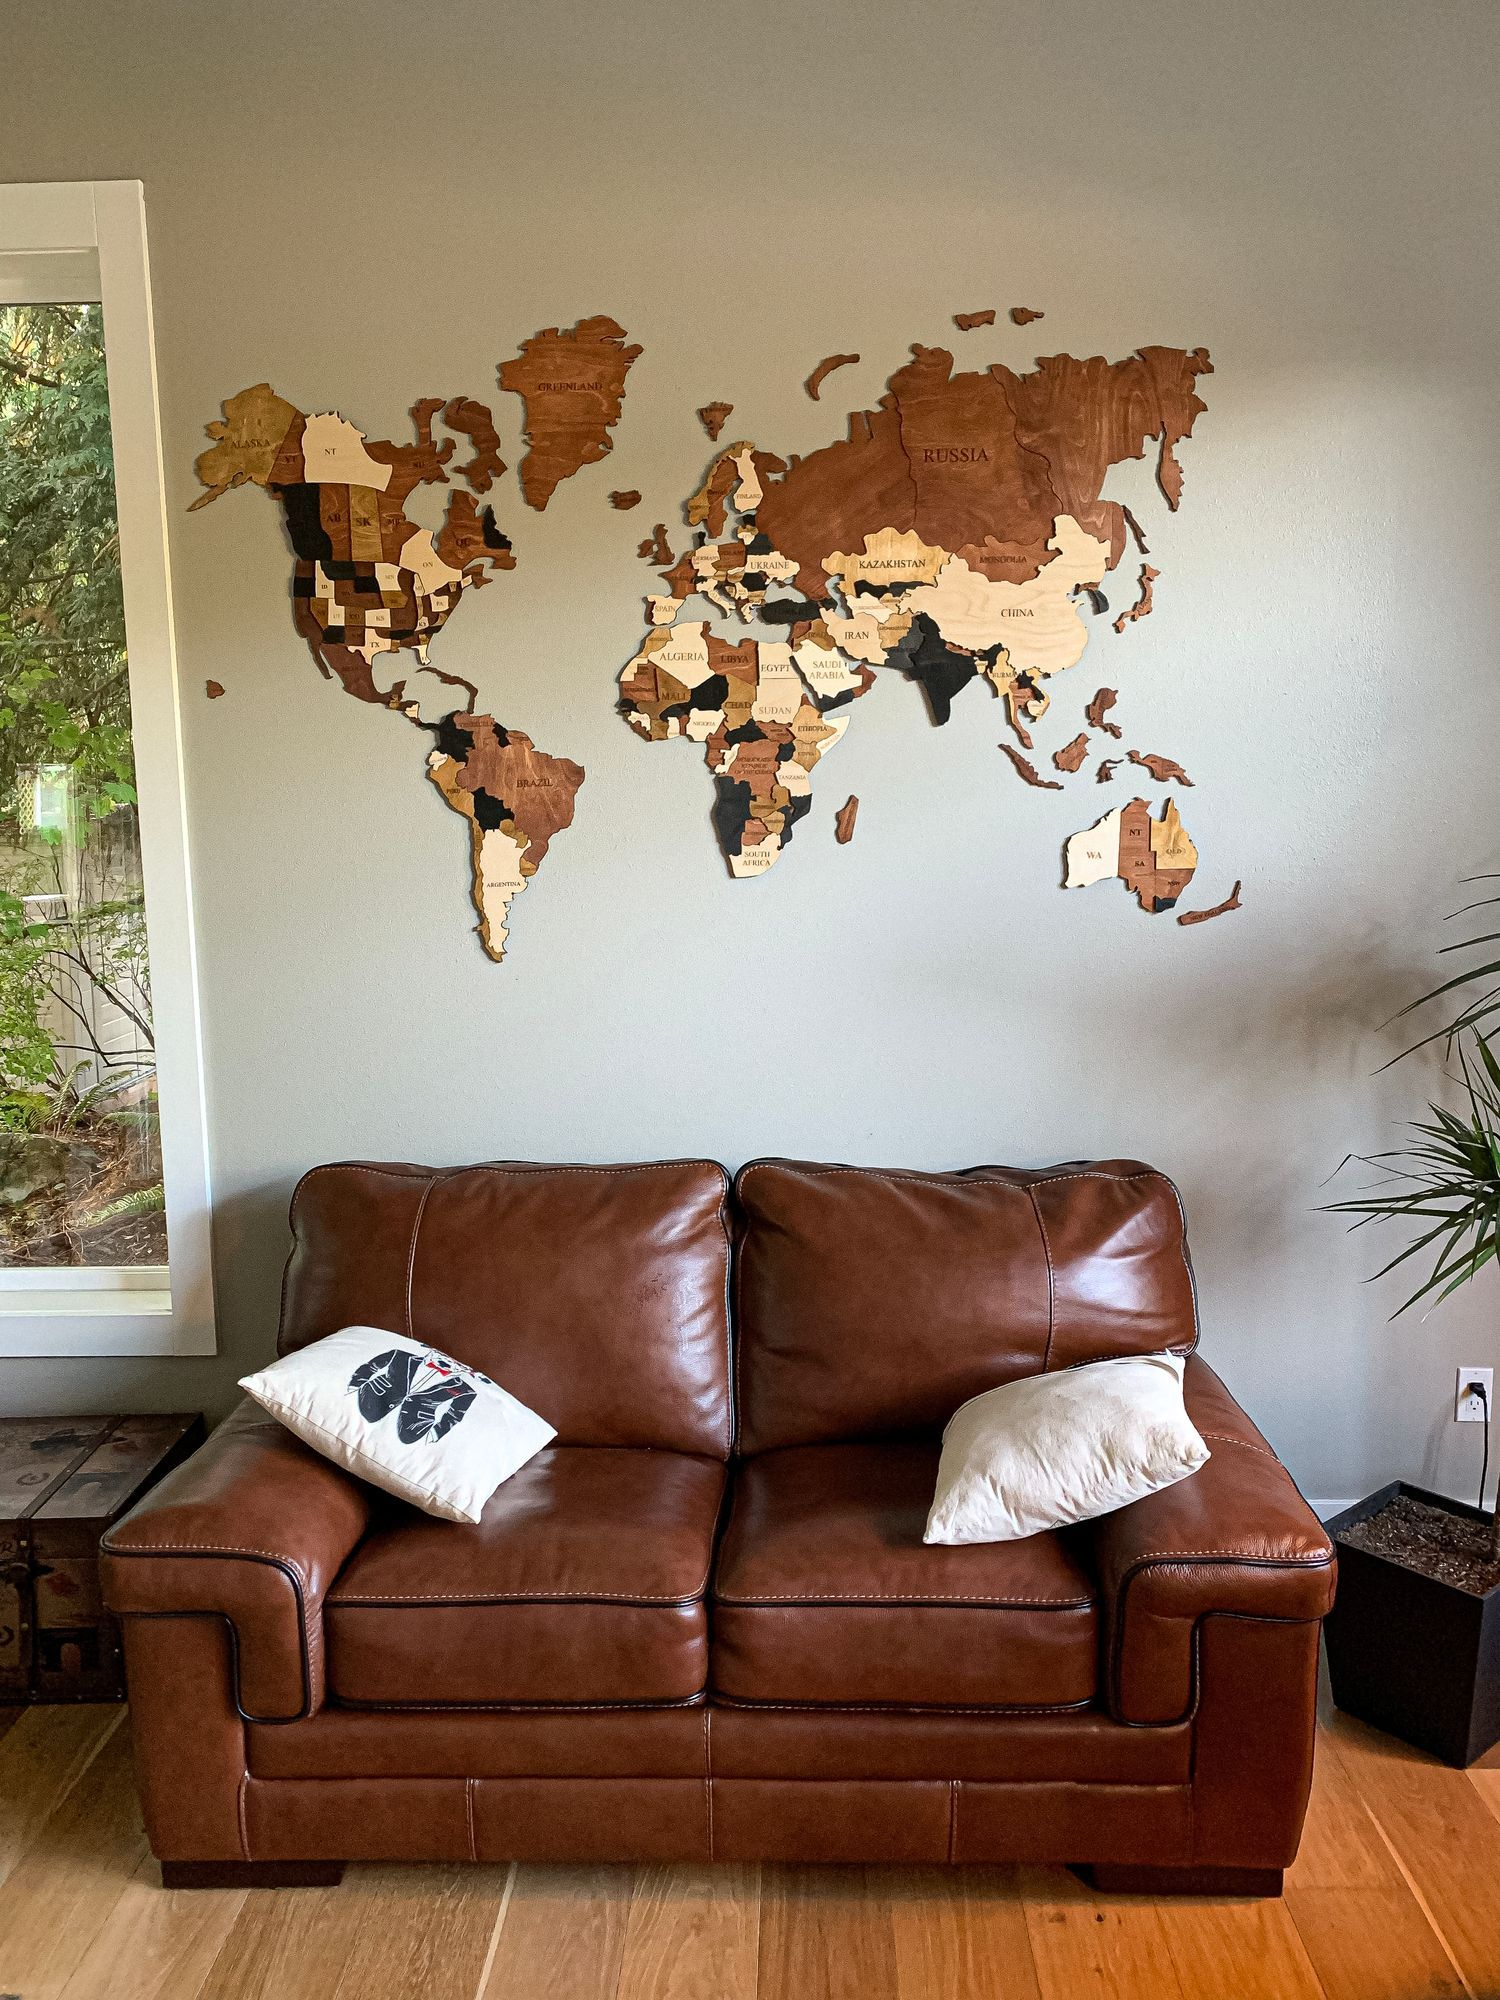 Wall Map Of The World Map Wood Wall Decor Wood Wall Art Etsy Living Room Decor Rustic Map Wall Decor Wood Wall Decor